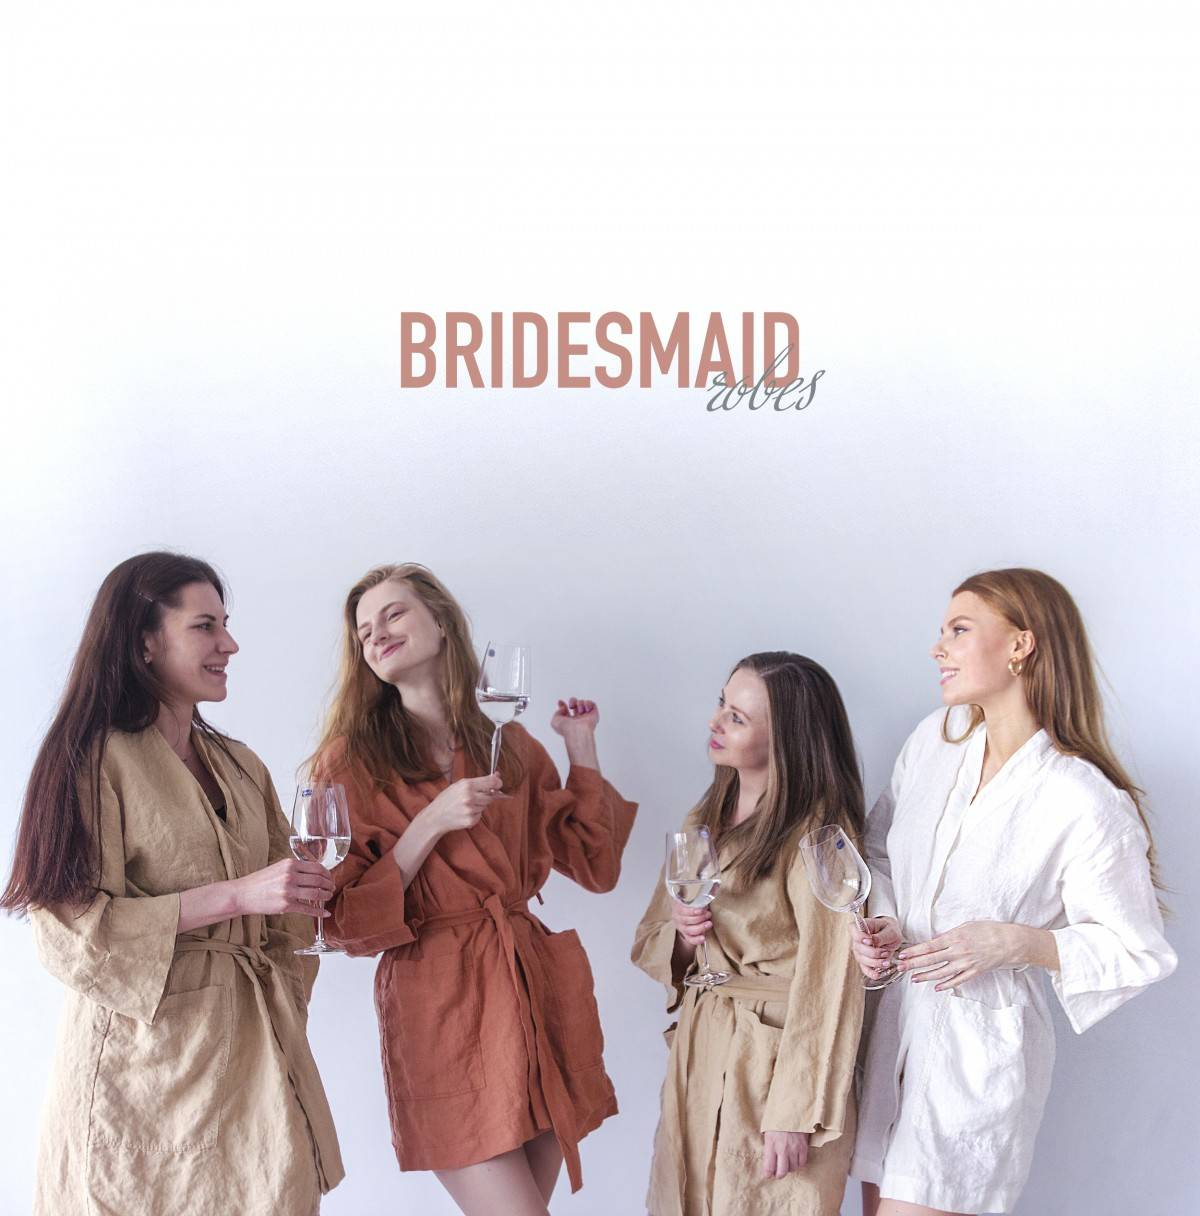 Bridesmaid party in ROBES!